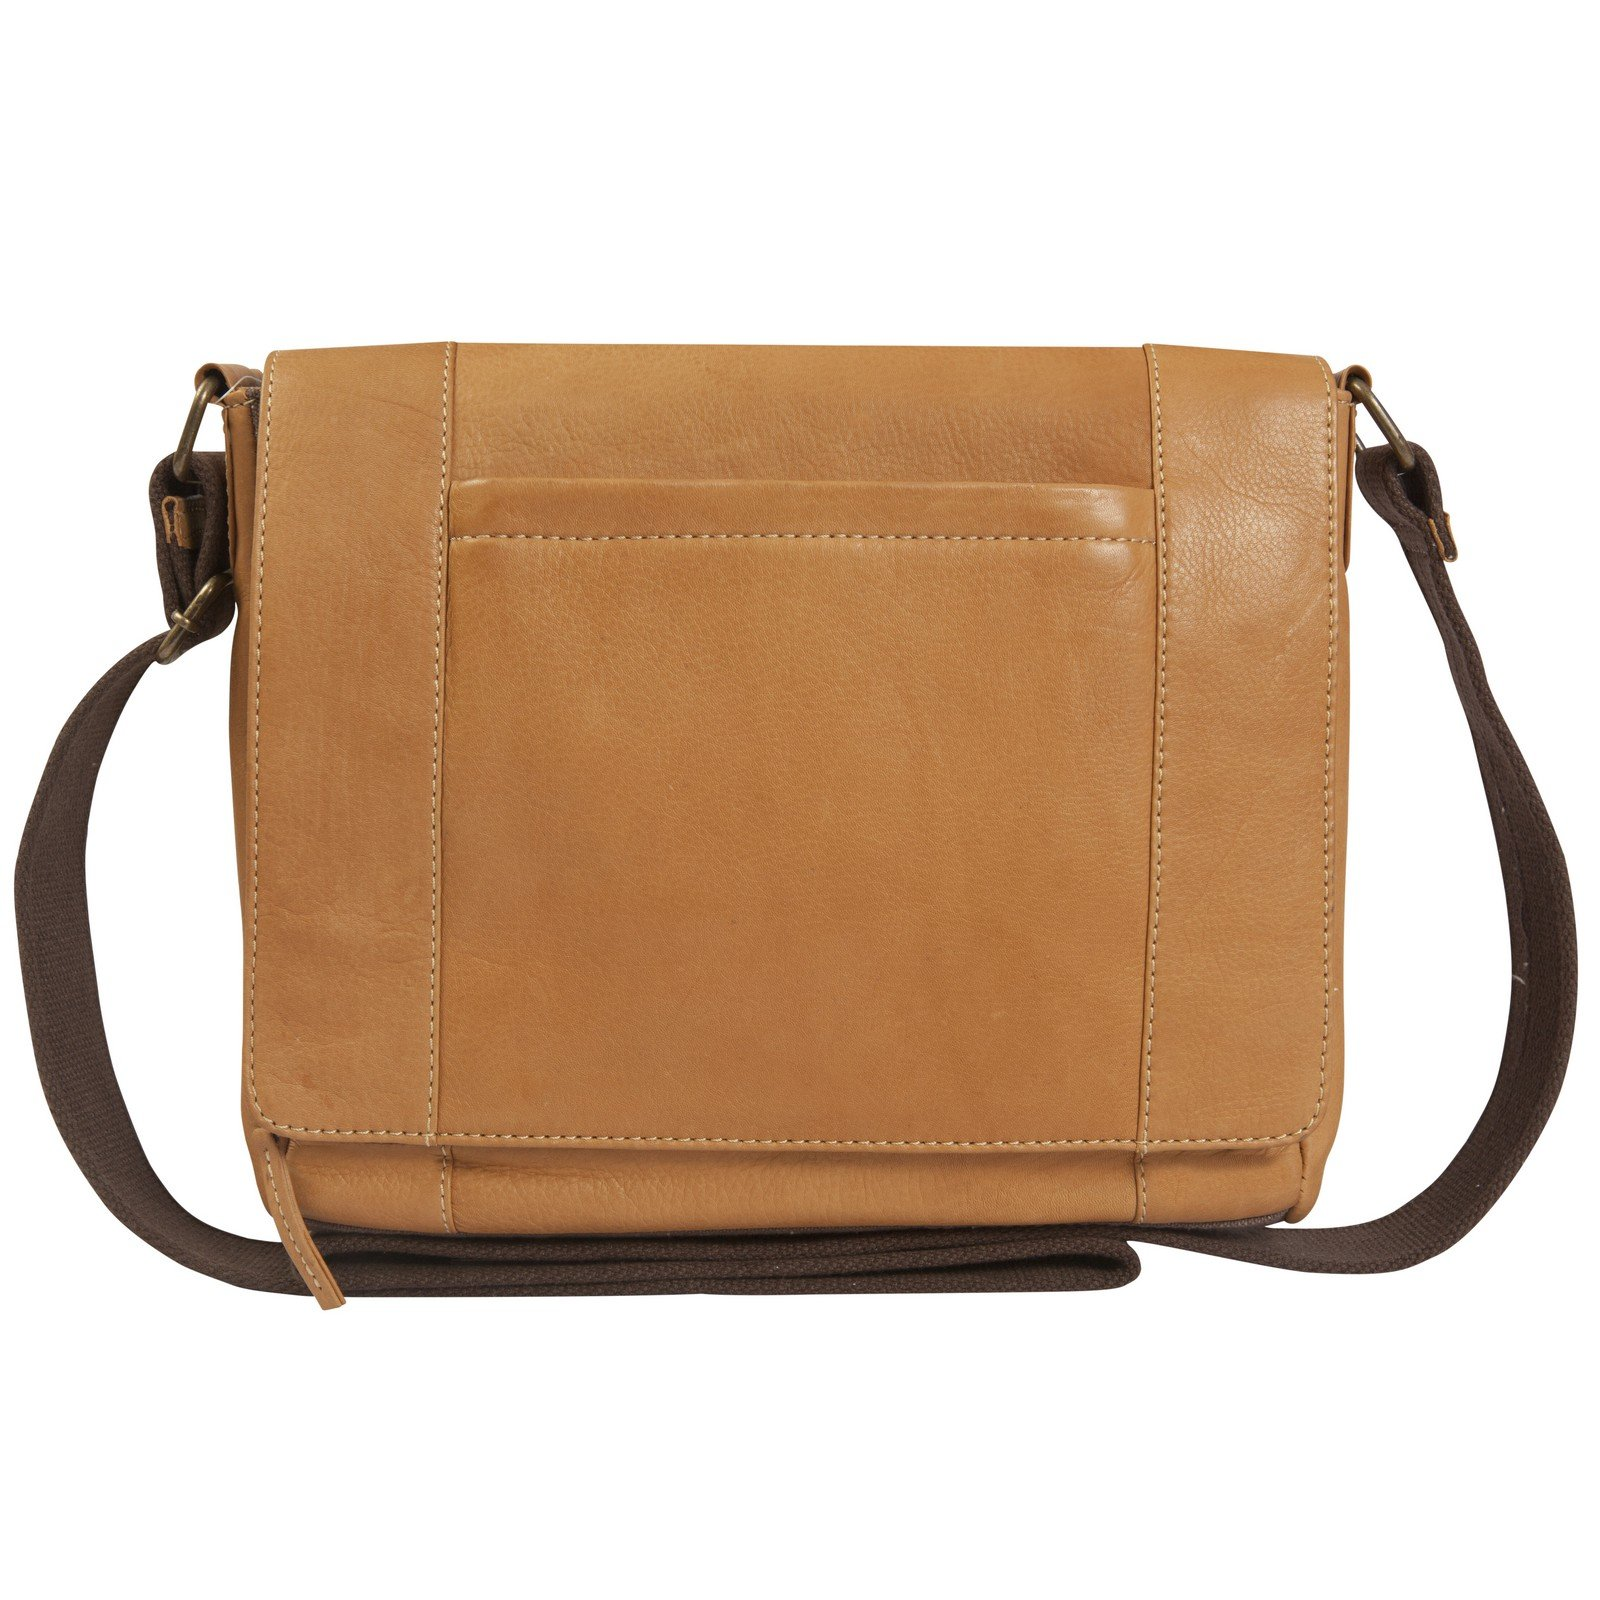 Canyon Outback Gem Canyon Leather Flapover Messenger Bag, Brown